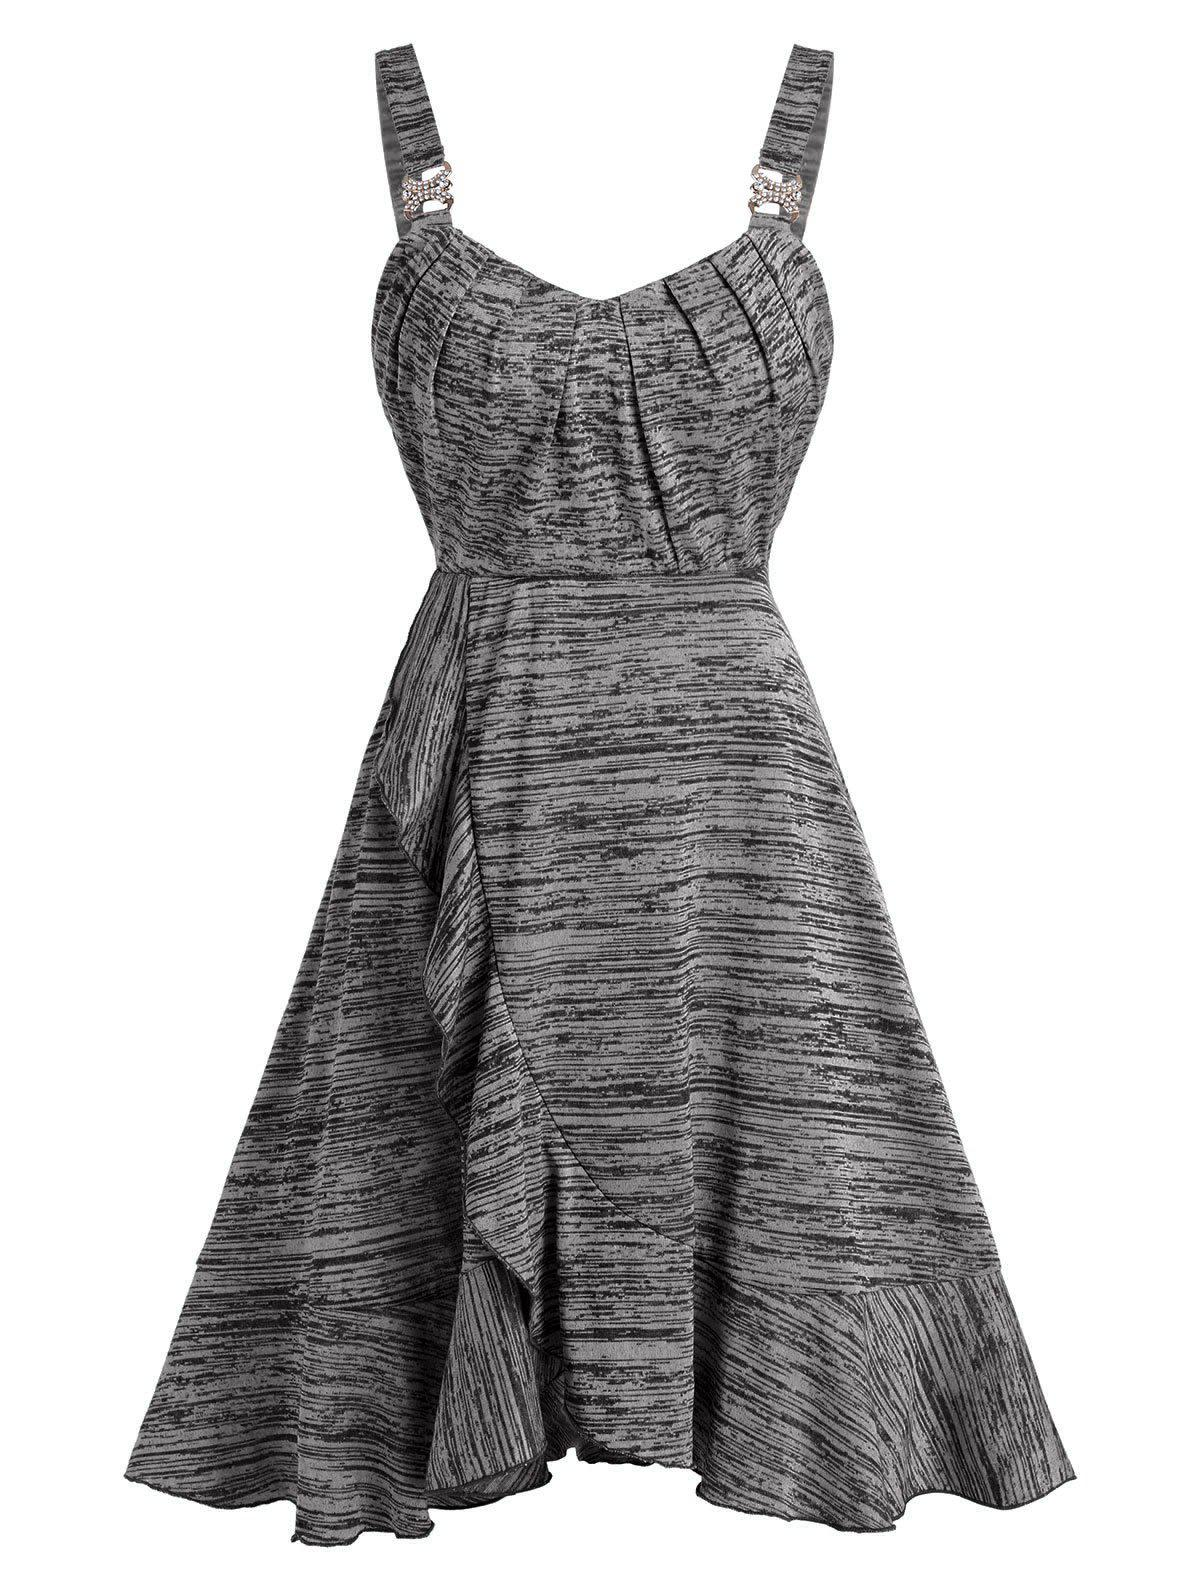 Space Dye Buckled Ruffled Mini Cami Dress - DARK GRAY 2XL